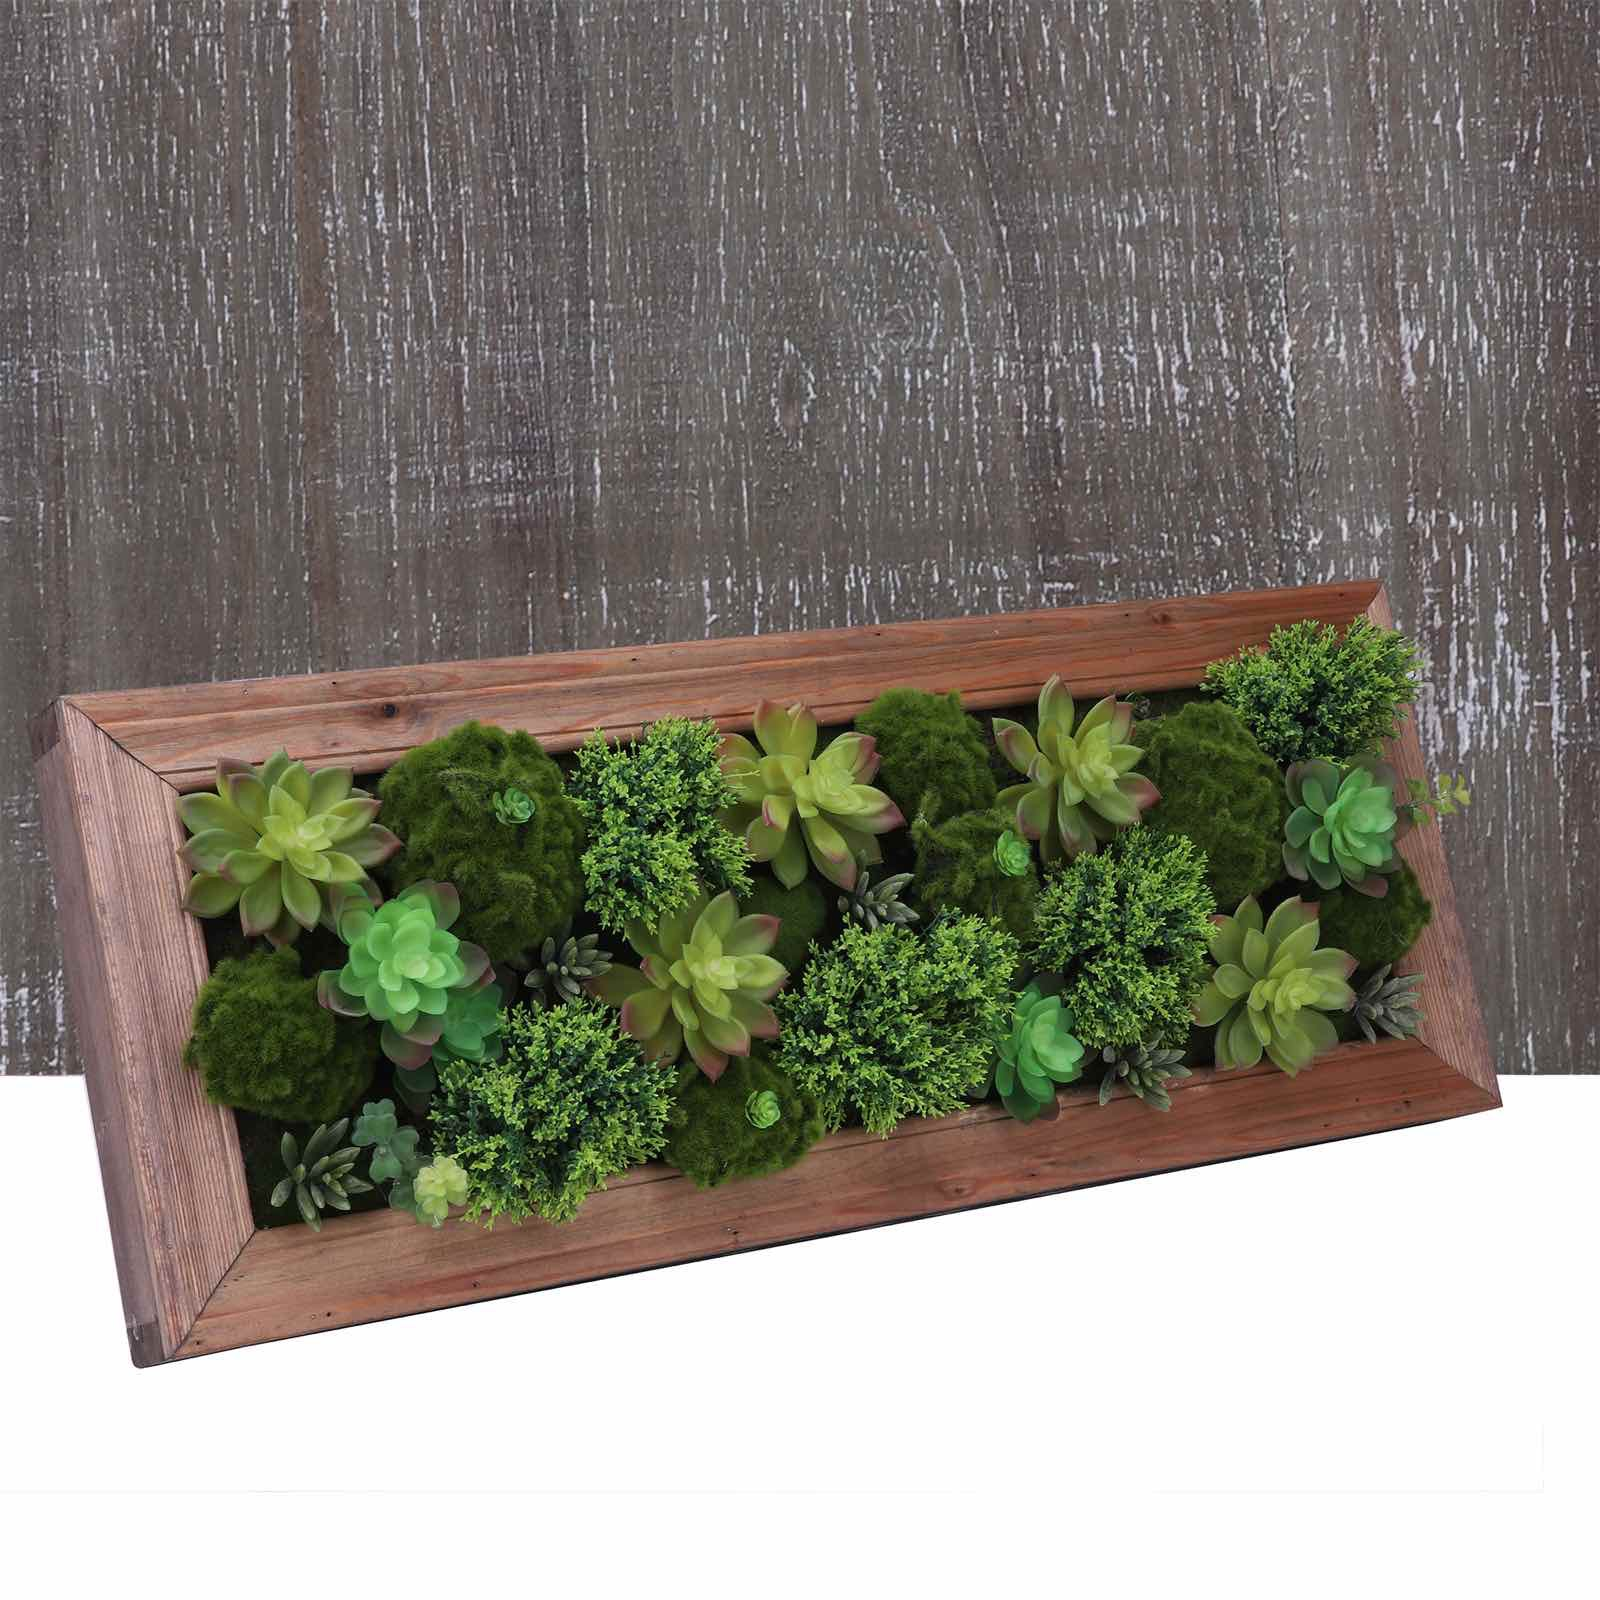 Free Shipping Artificial Succulent Arrangement Succulent Wall Art Wall Decor Wooden Frame Not Plastic Pp Pvc 11 8 19 6 Sold By Preservedfresh Flower On Storenvy